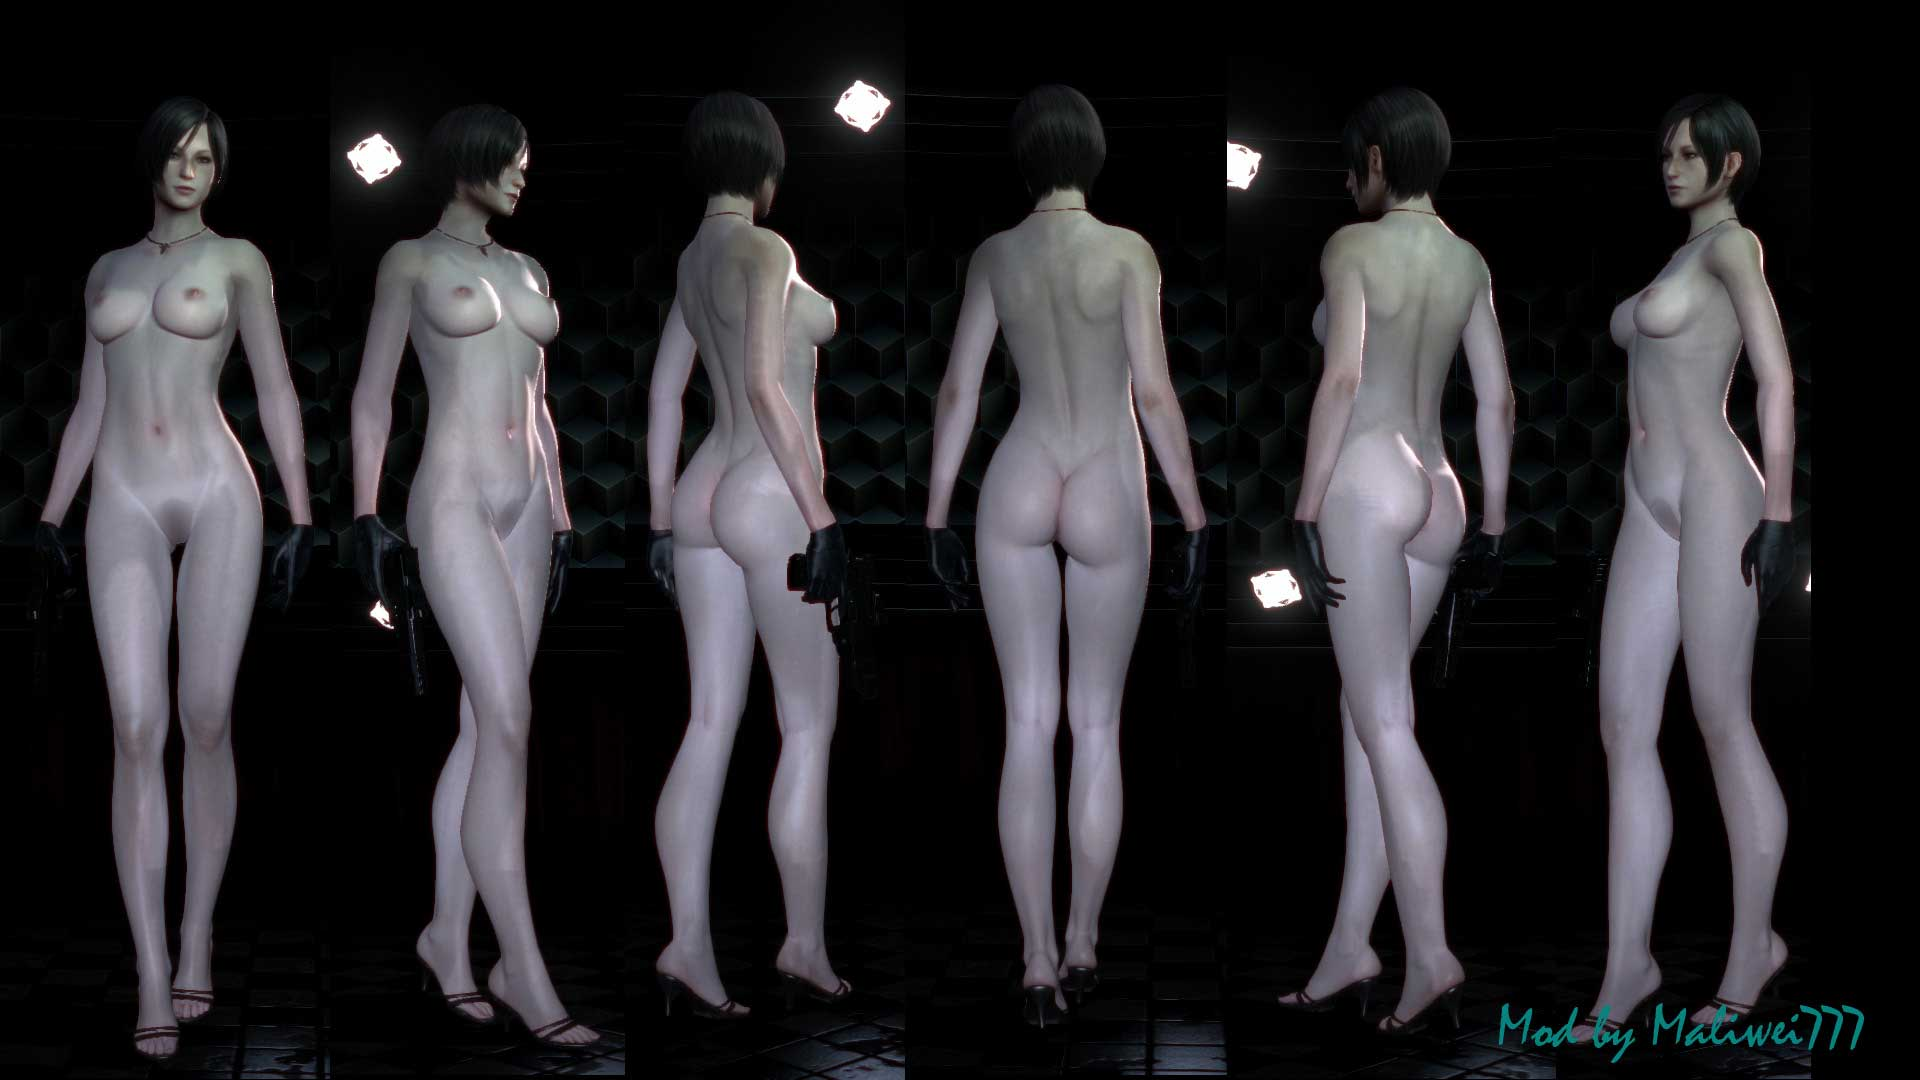 Gta4 nude boobs mod fucks toons